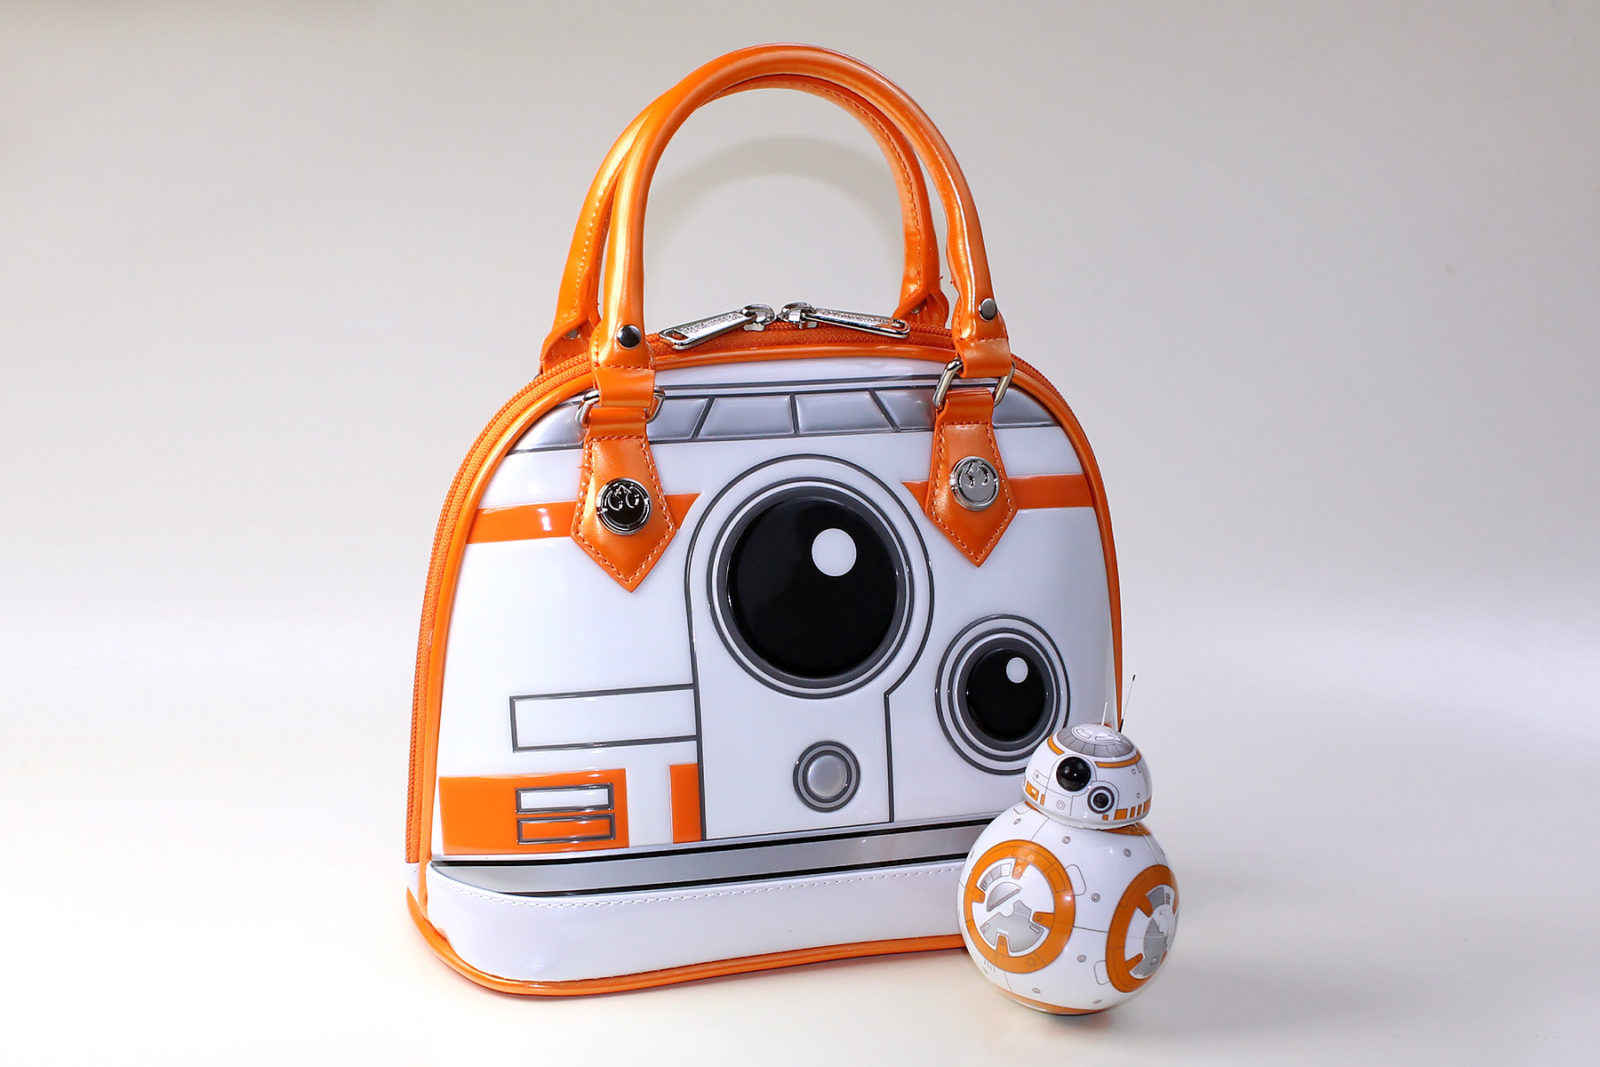 Review – Loungefly BB-8 dome handbag